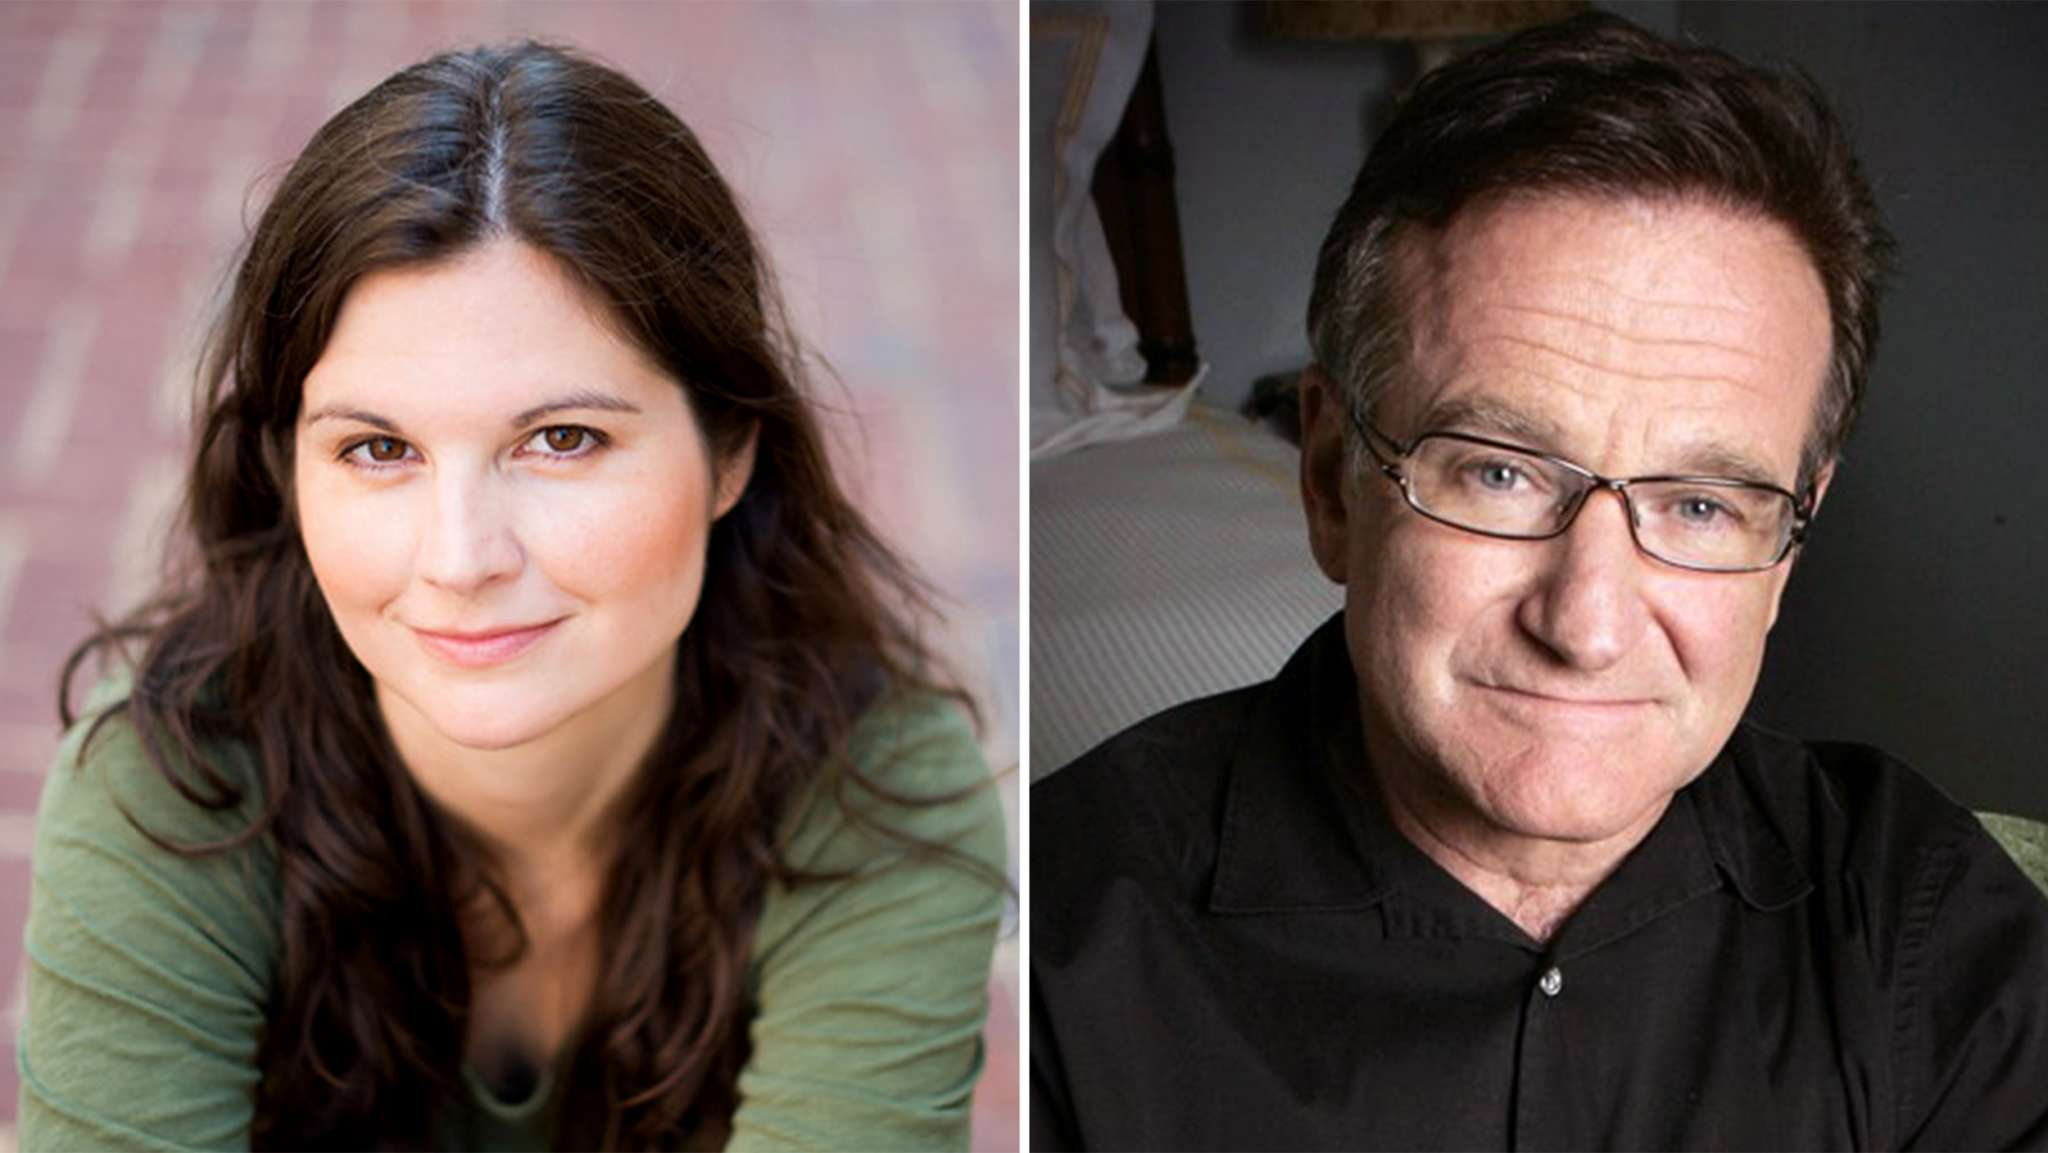 robin-williams-mrs-doubtfire-co-star-lisa-jakub-reveals-how-he-helped-her-cope-with-depression-as-a-teen